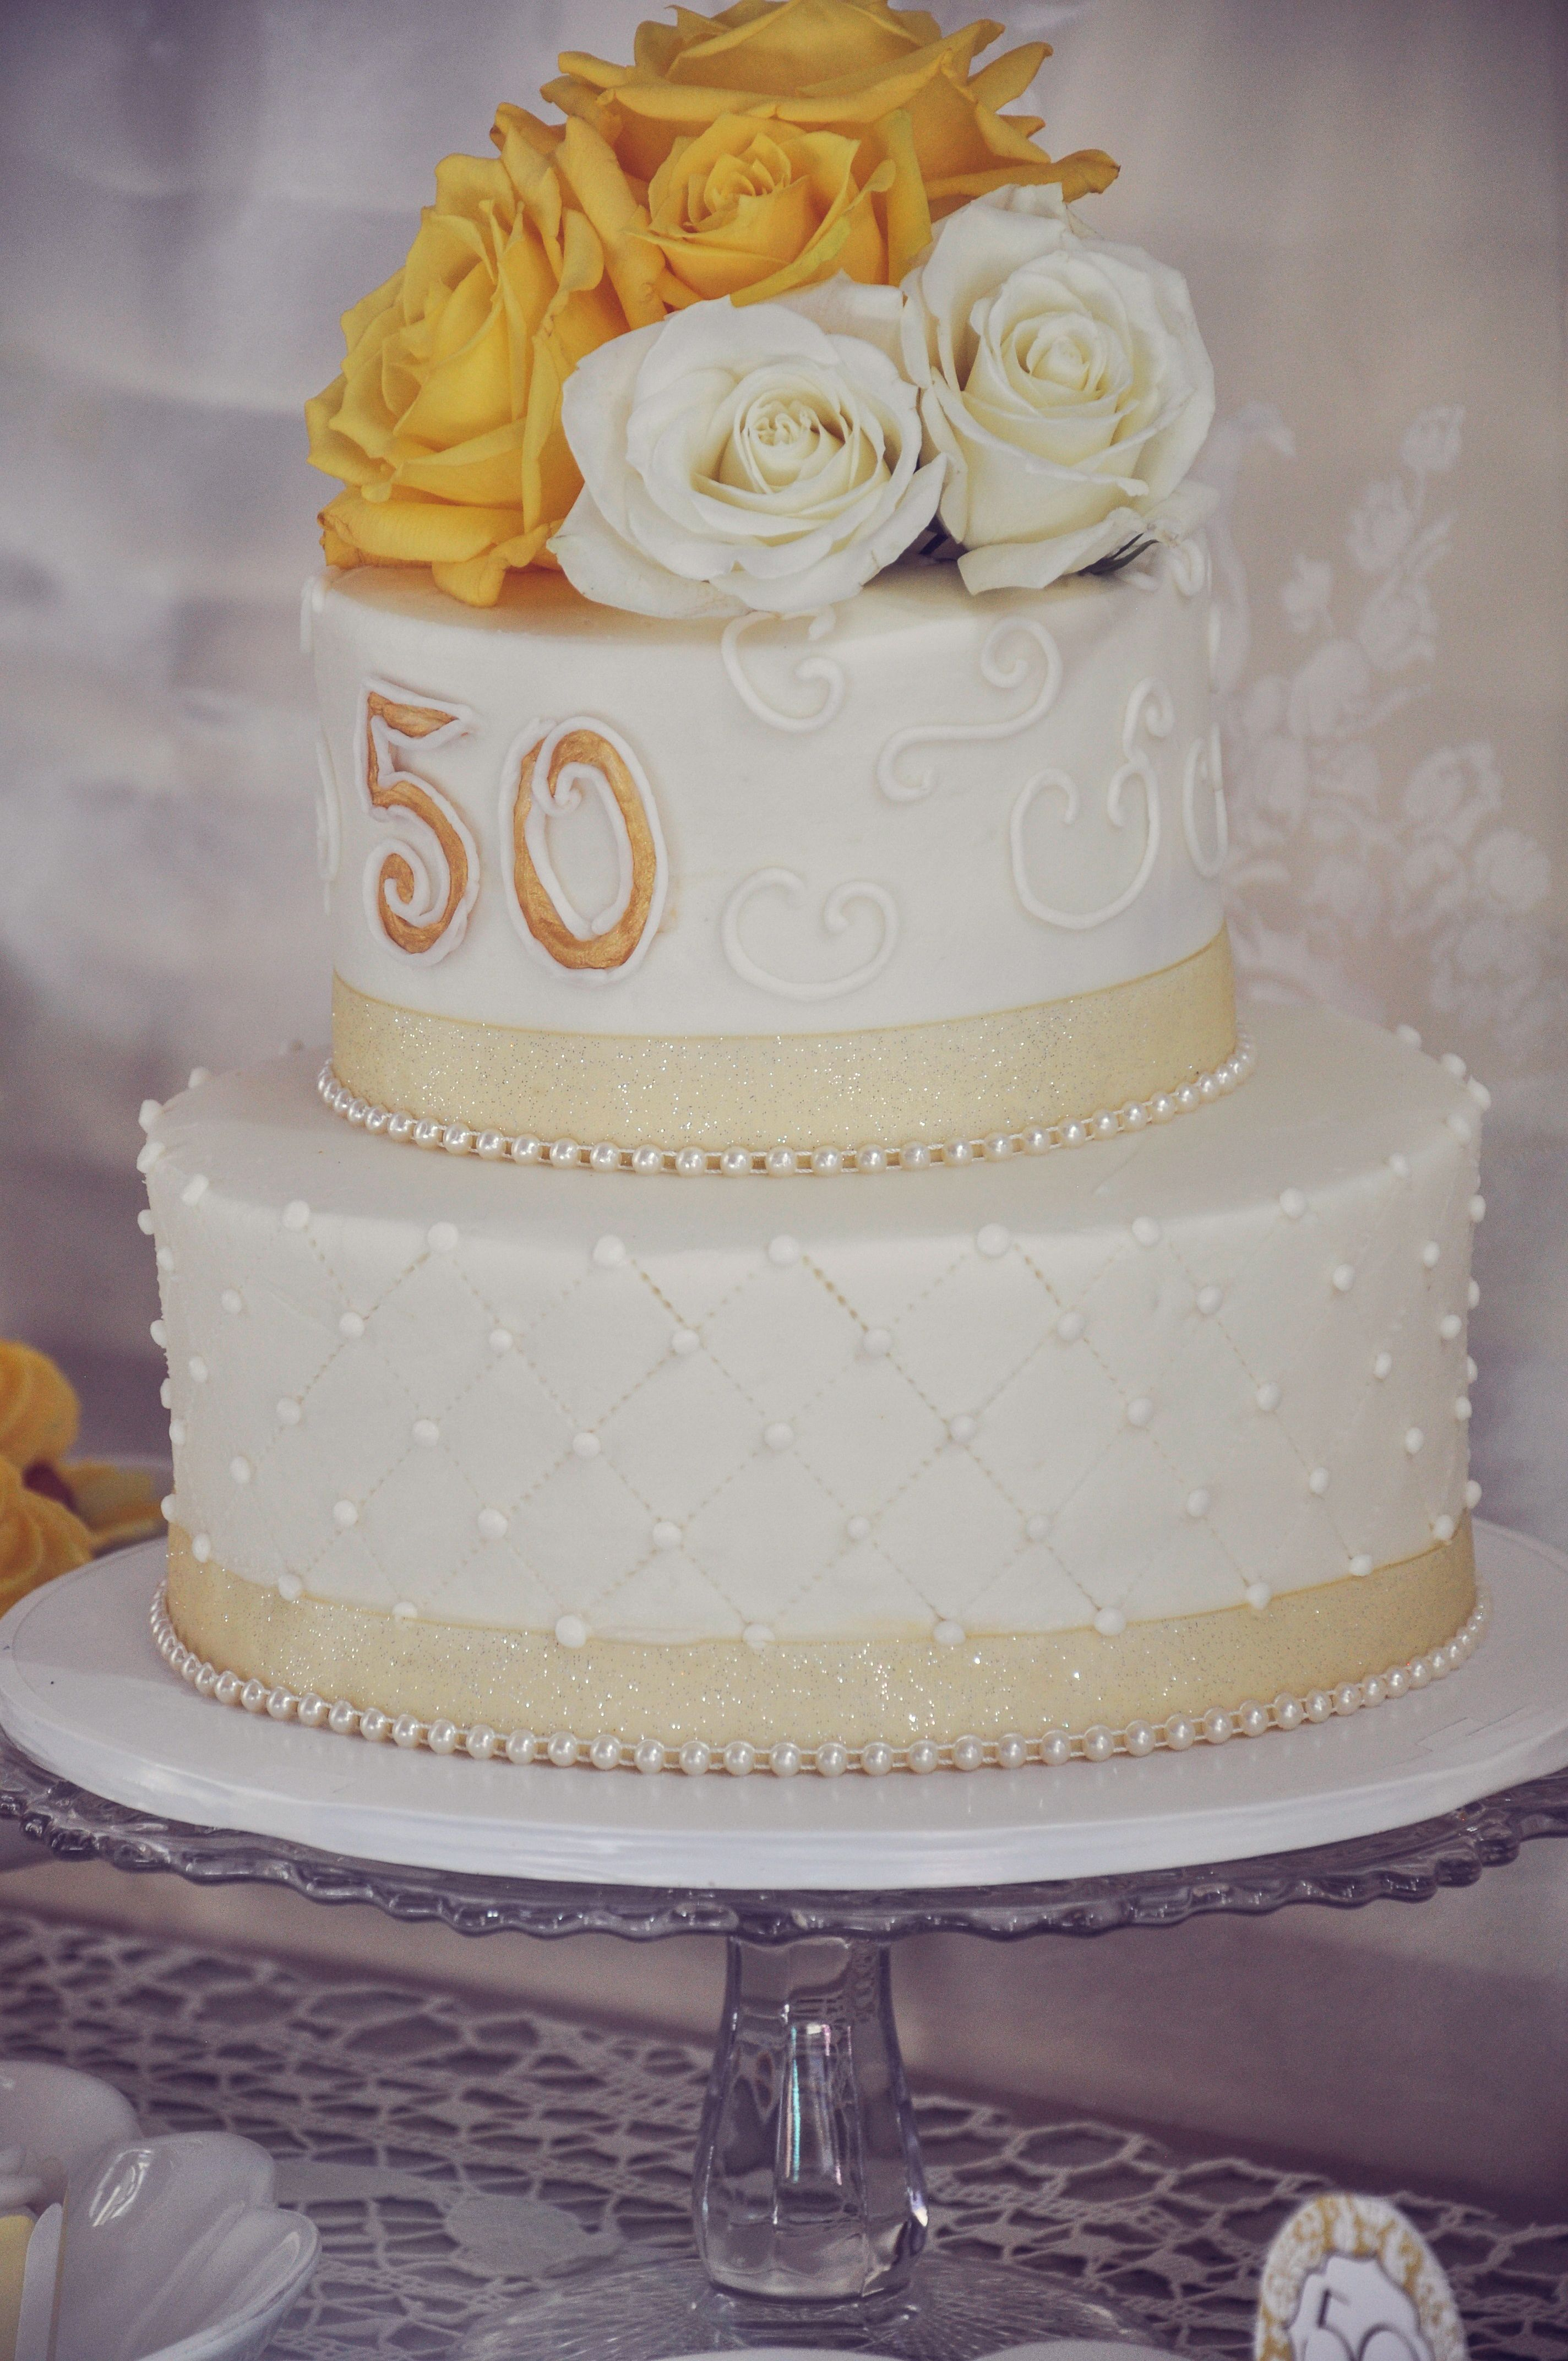 50th Anniversary cake | Anniversary party | Pinterest ...